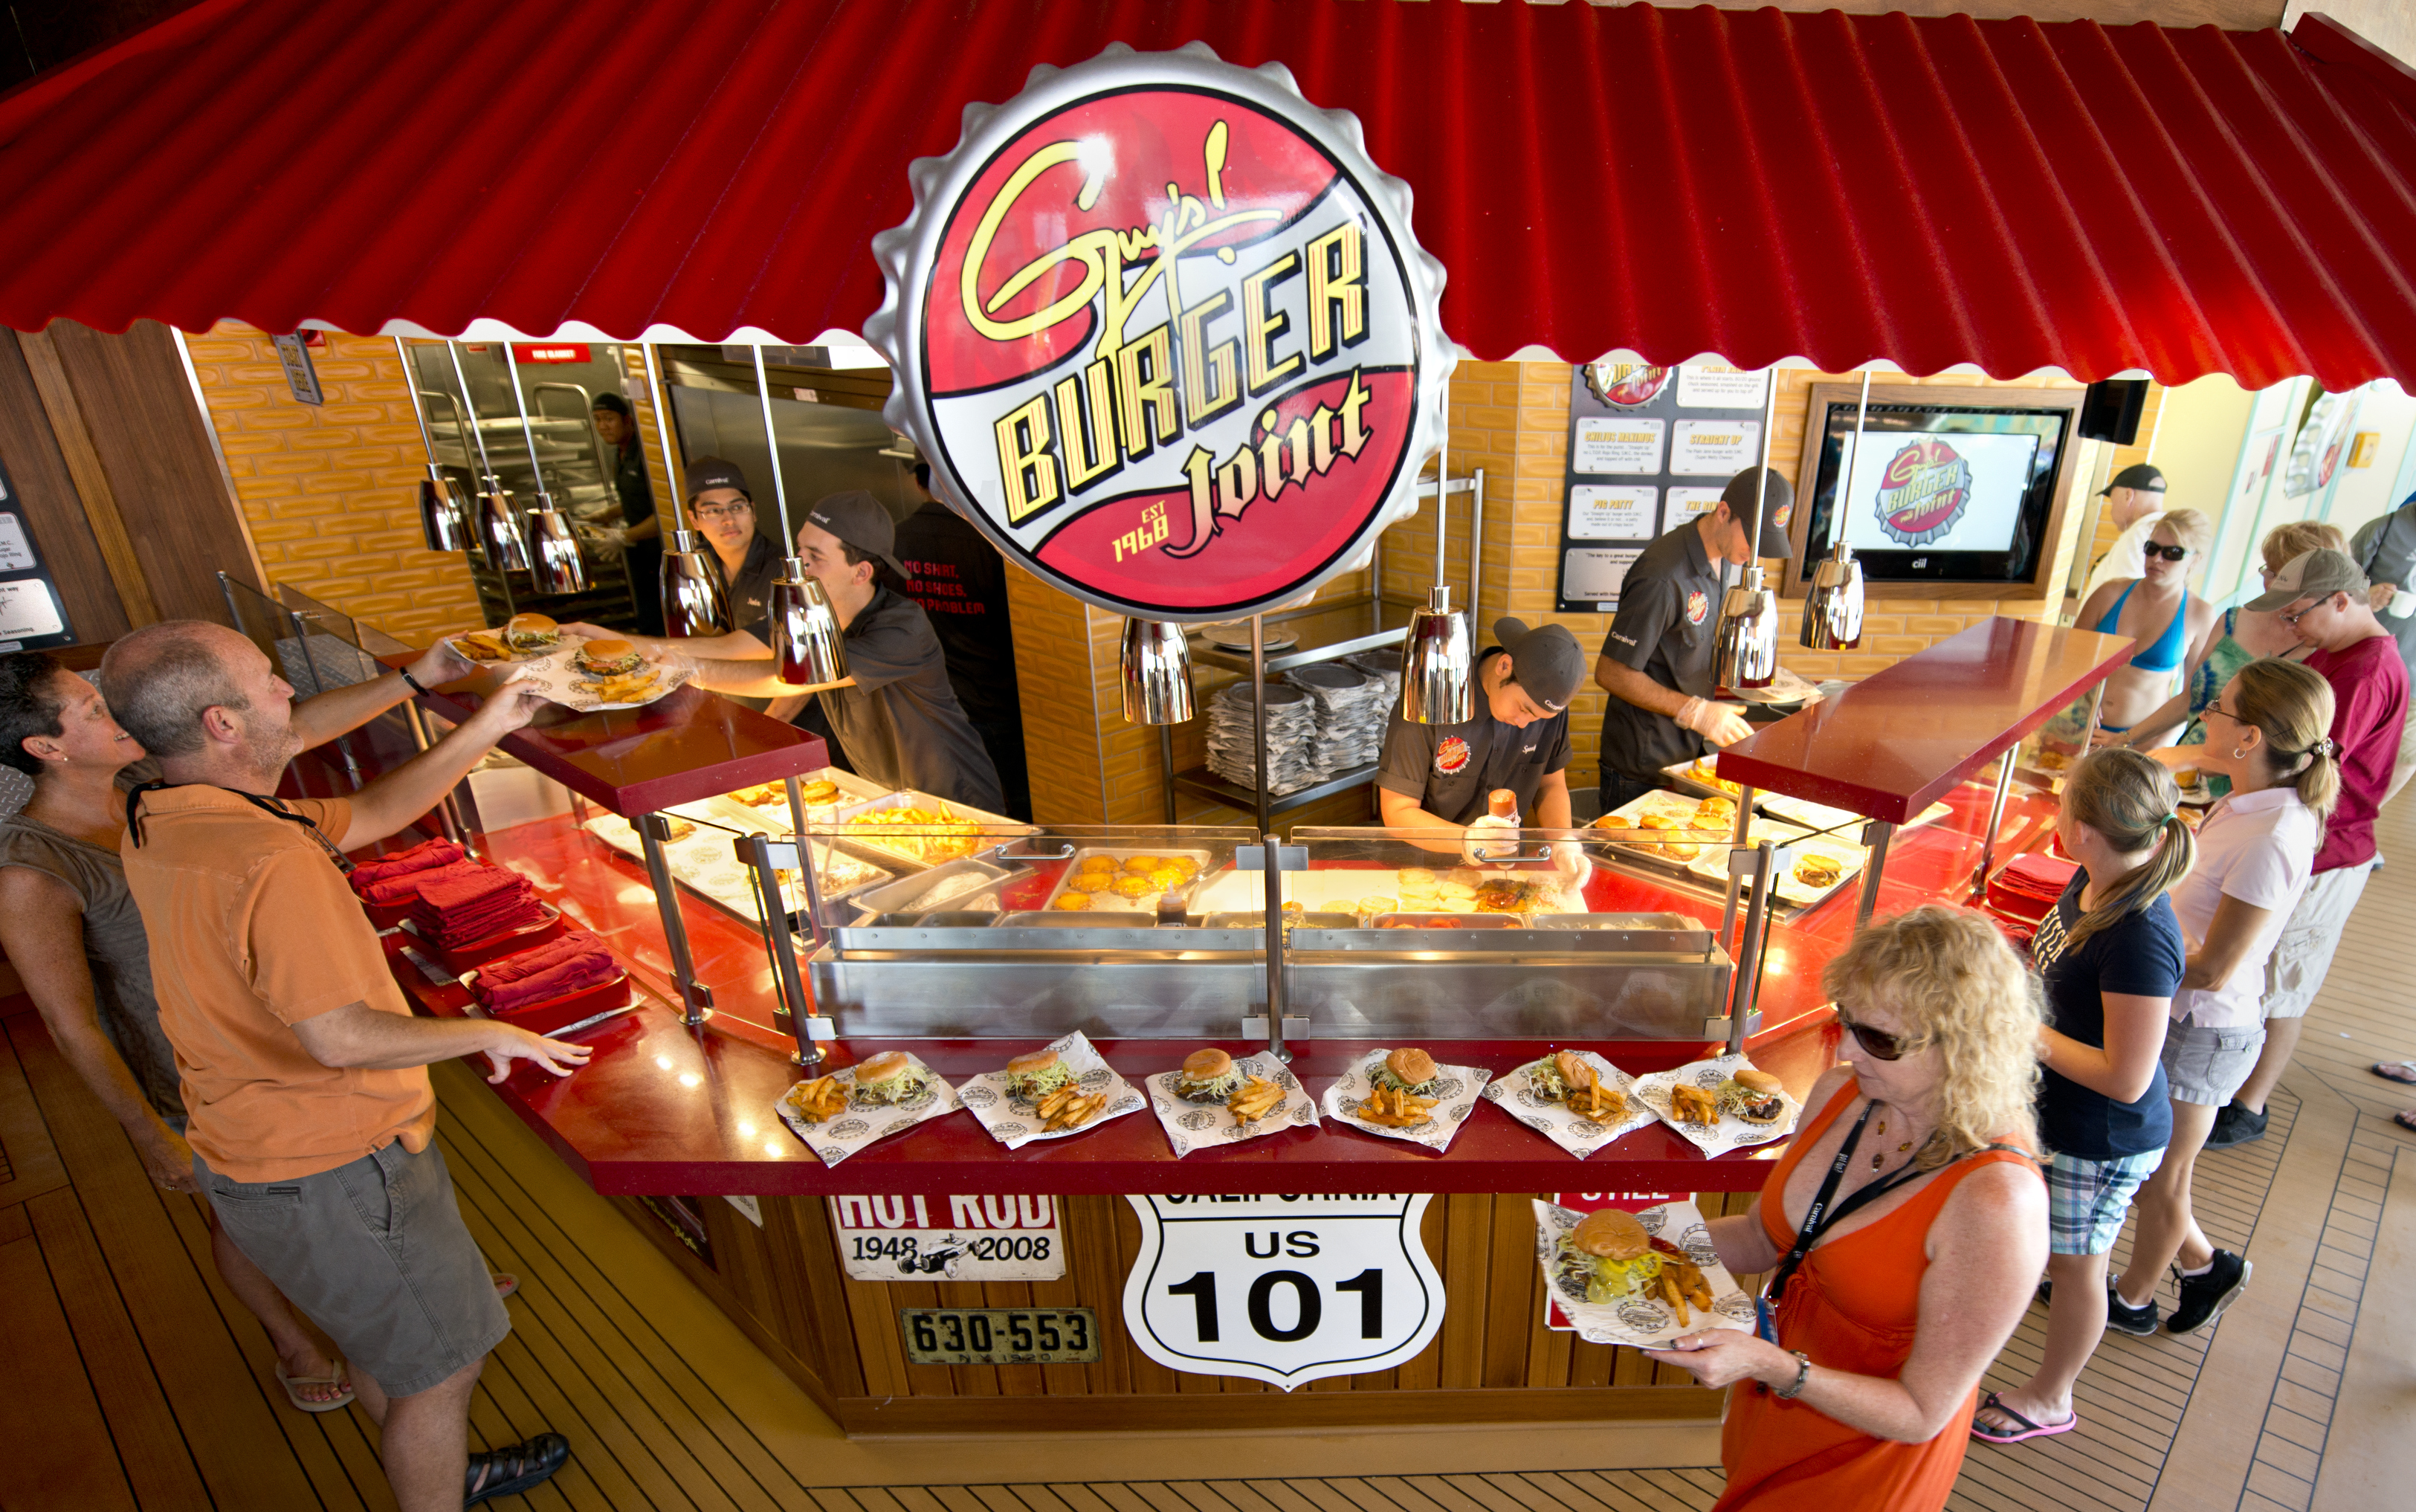 Celebrate National Hamburger Day with a Tasty Recipe from Guy's Burger Joints, Developed in Tandem by Food Network Star Guy Fieri and Carnival Cruise Line